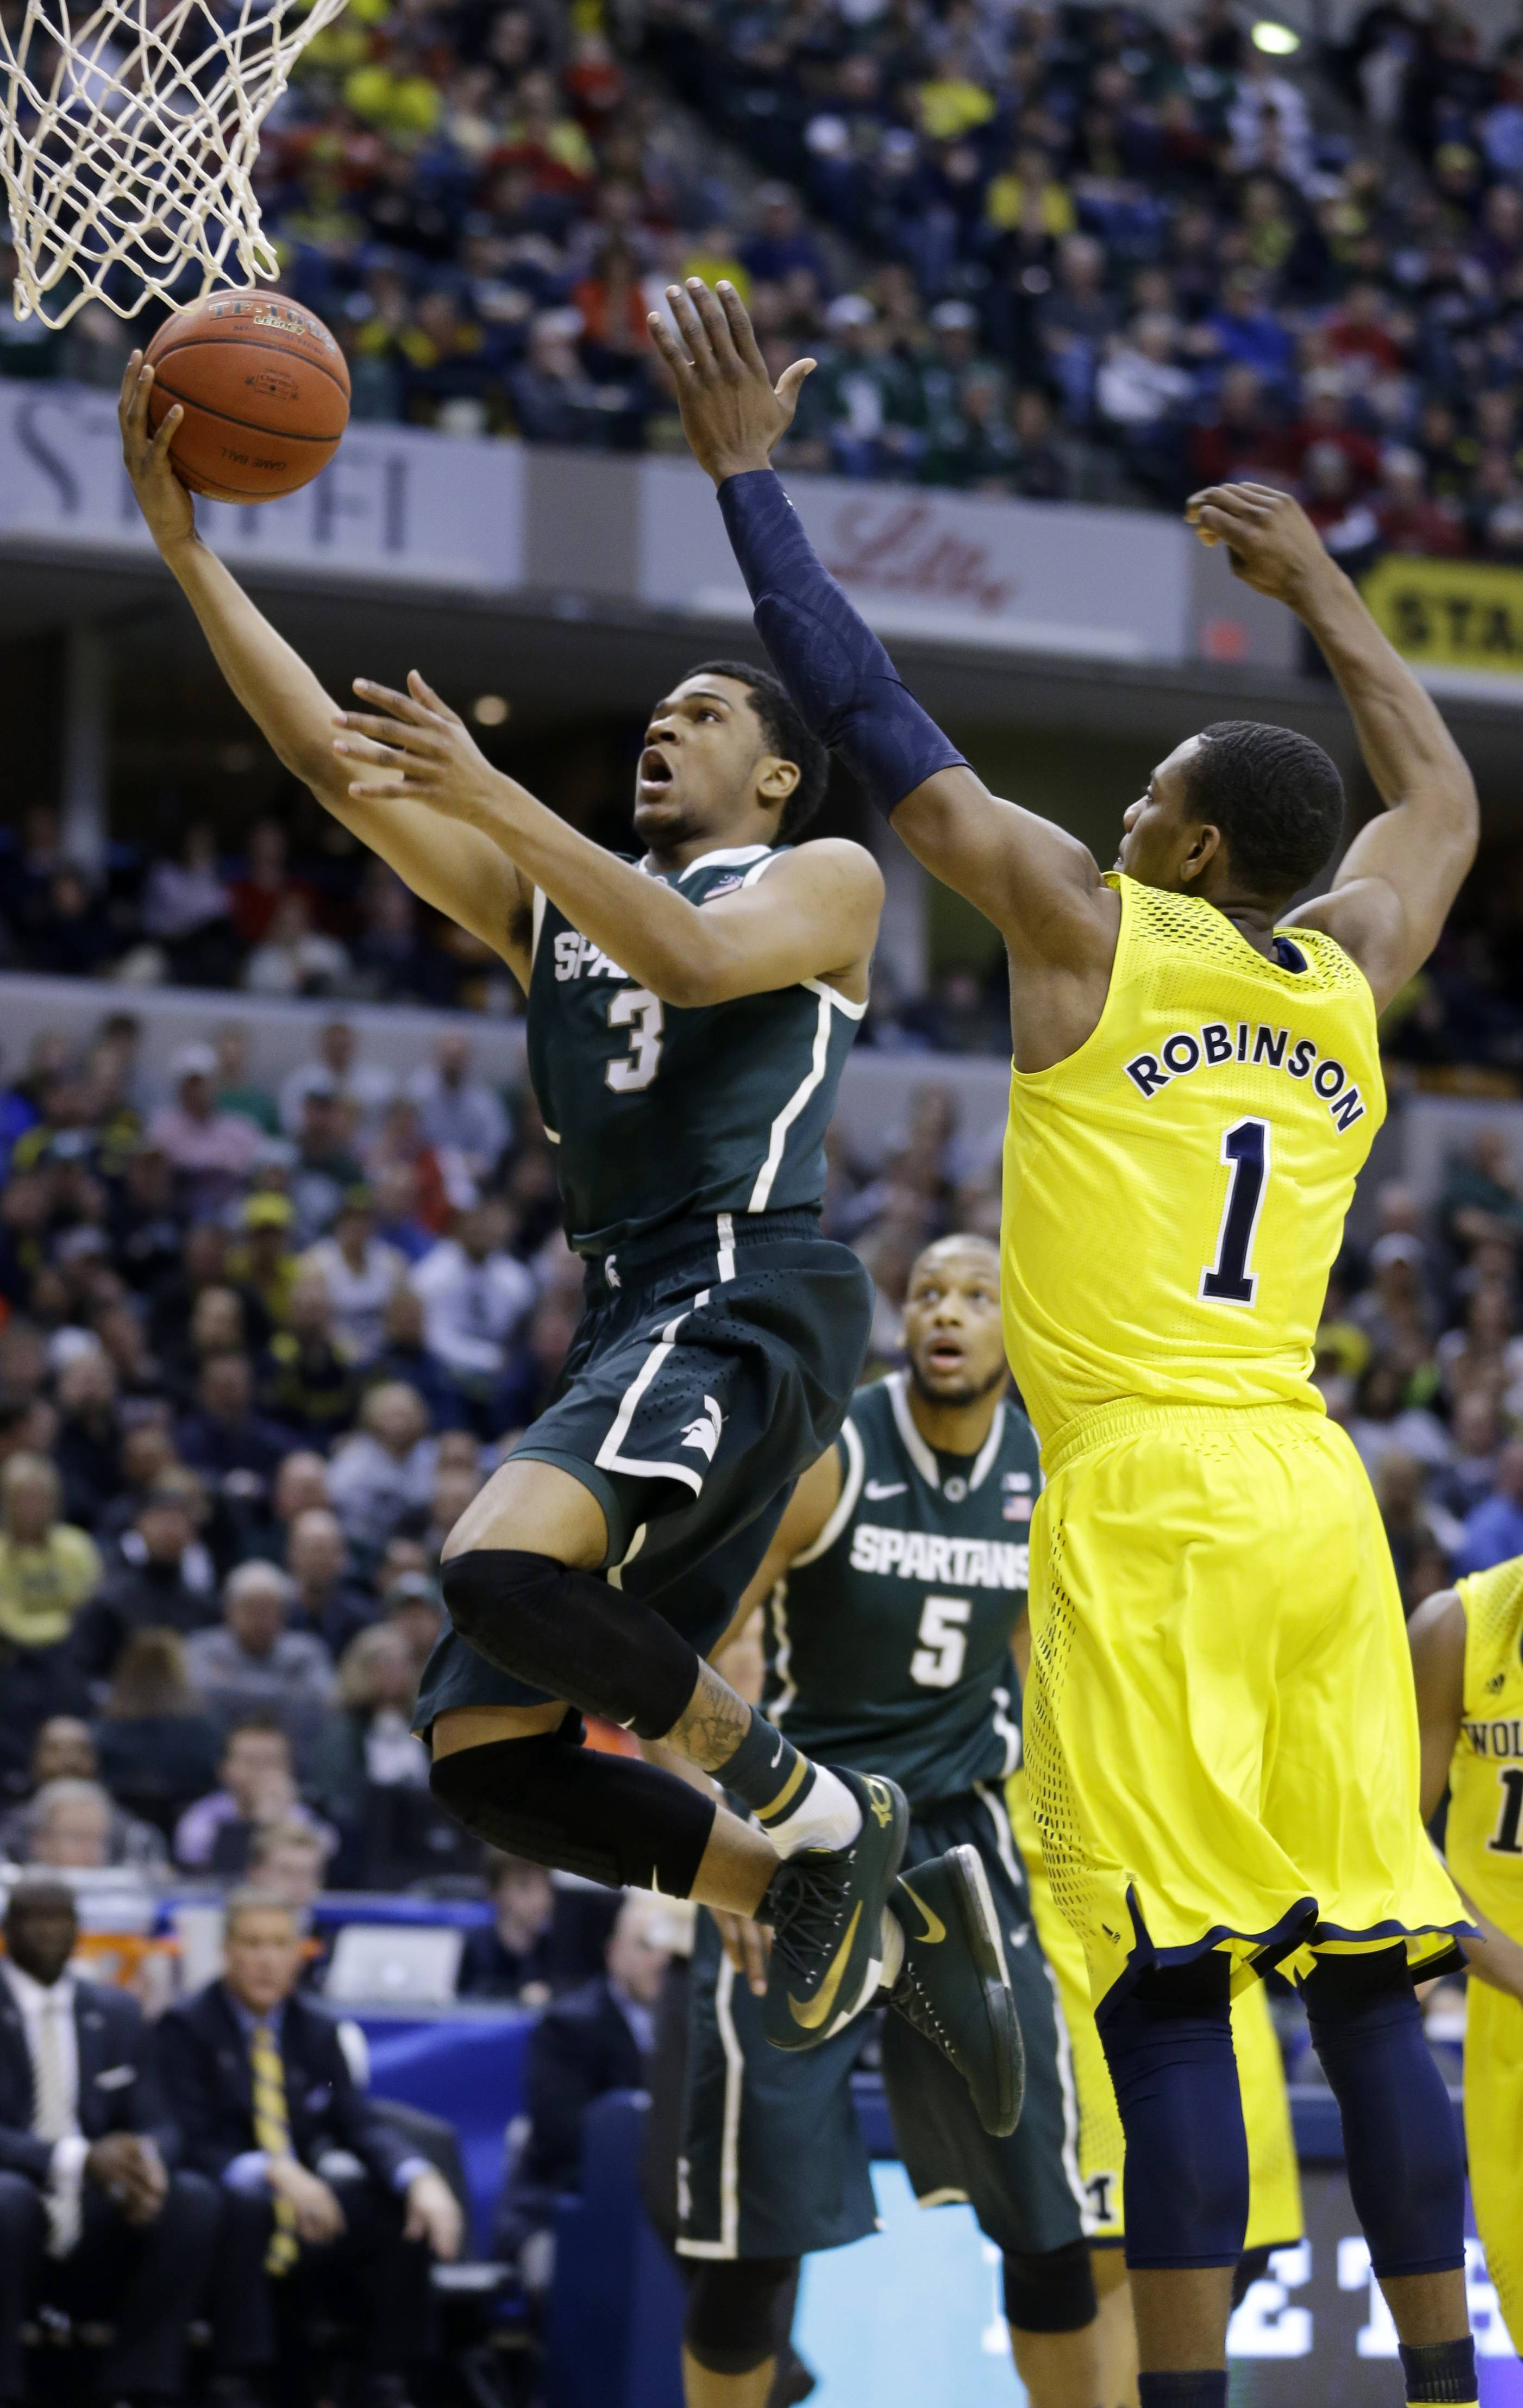 Michigan State guard Alvin Ellis III (3) goes up for a basket against Michigan forward Glenn Robinson III (1) in the first half of an NCAA college basketball game in the championship of the Big Ten Conference tournament on Sunday, March 16, 2014, in Indianapolis.